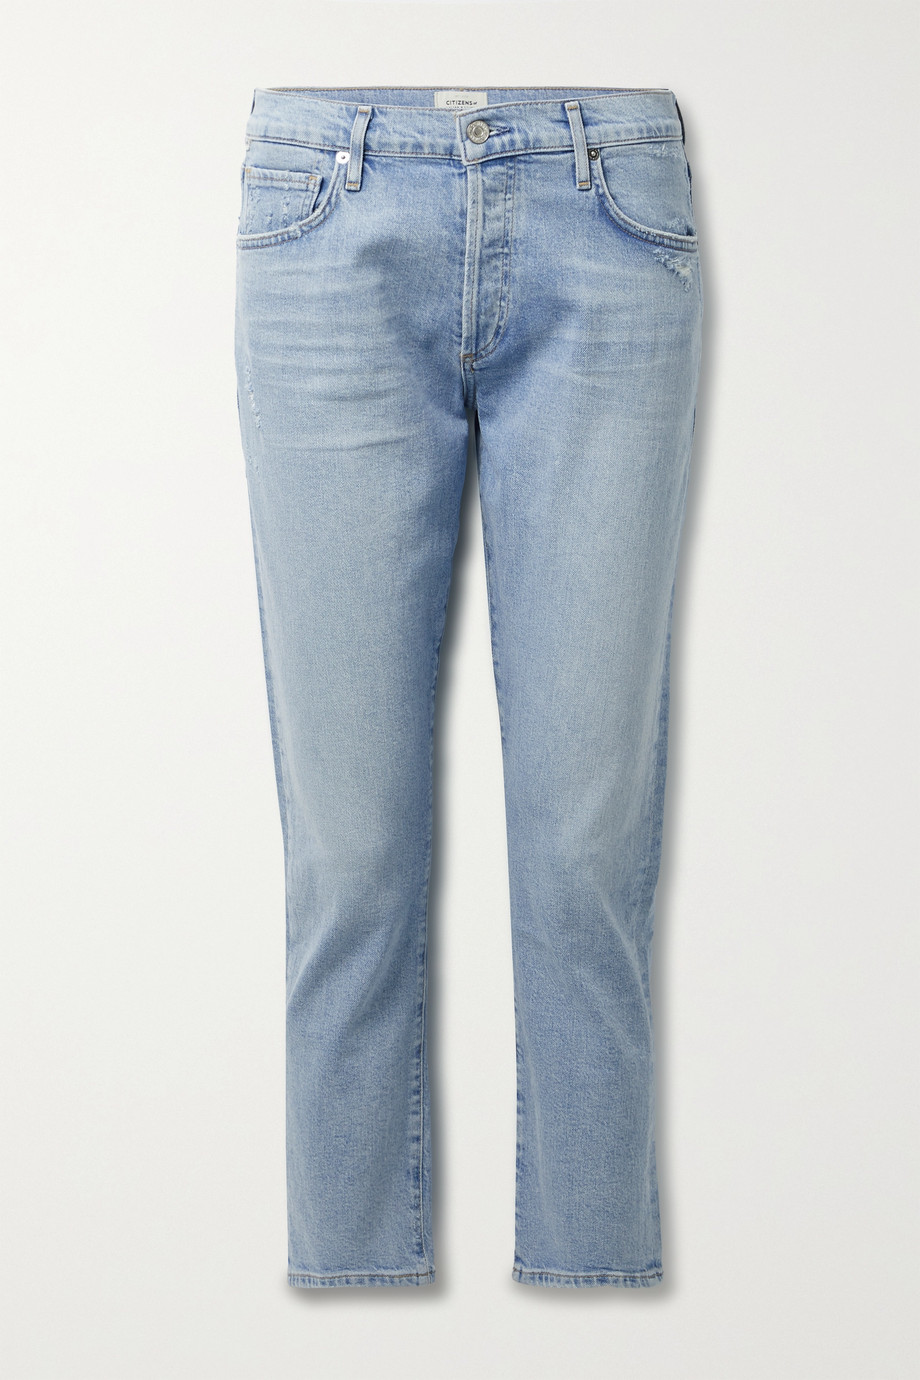 Citizens of Humanity + NET SUSTAIN Emerson cropped distressed organic mid-rise straight-leg jeans